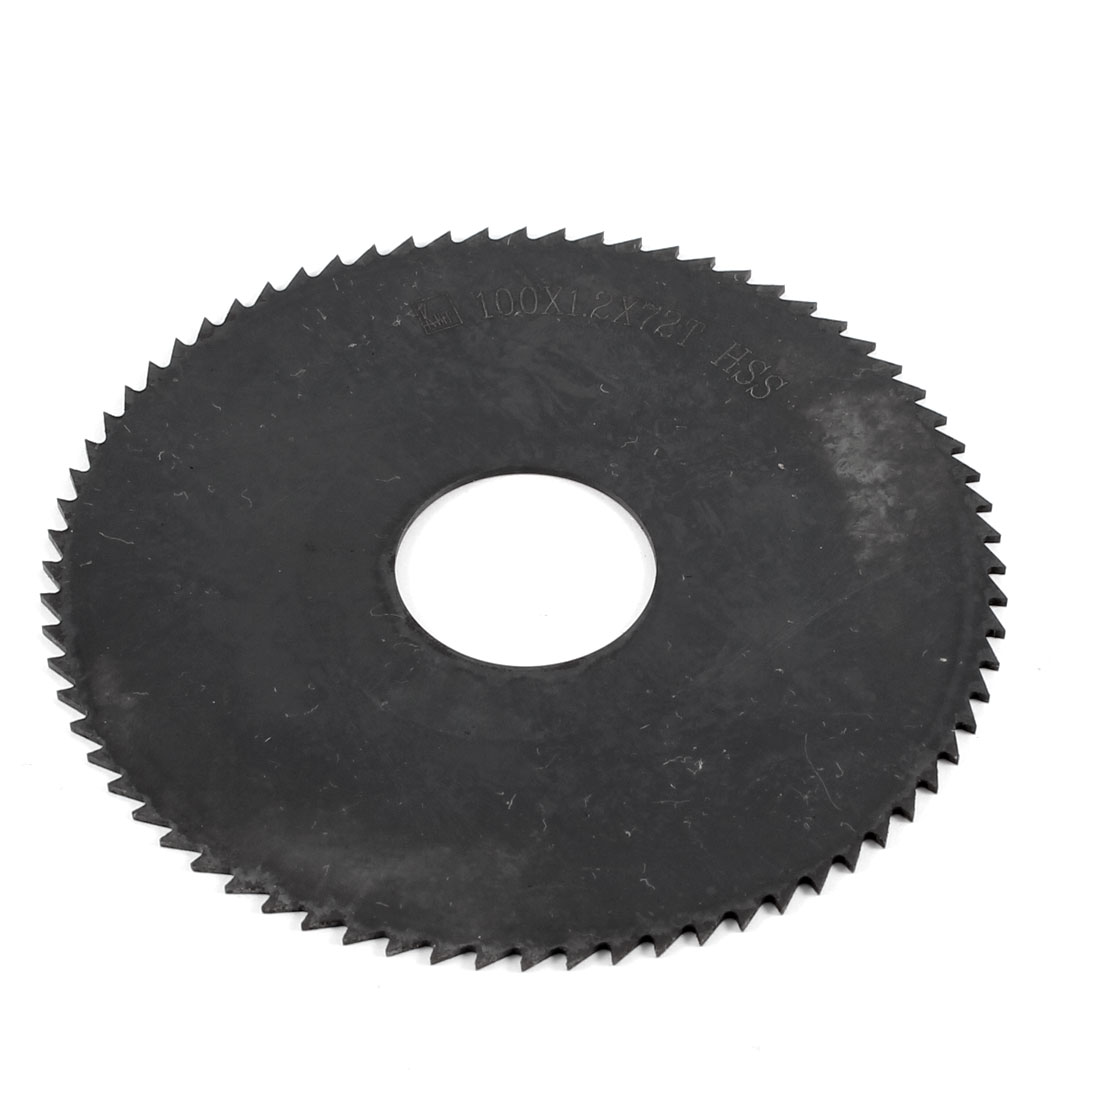 Black HSS 72 Teeth 100mm x 1.2mm x 27mm Slitting Saw Blade Repair Parts